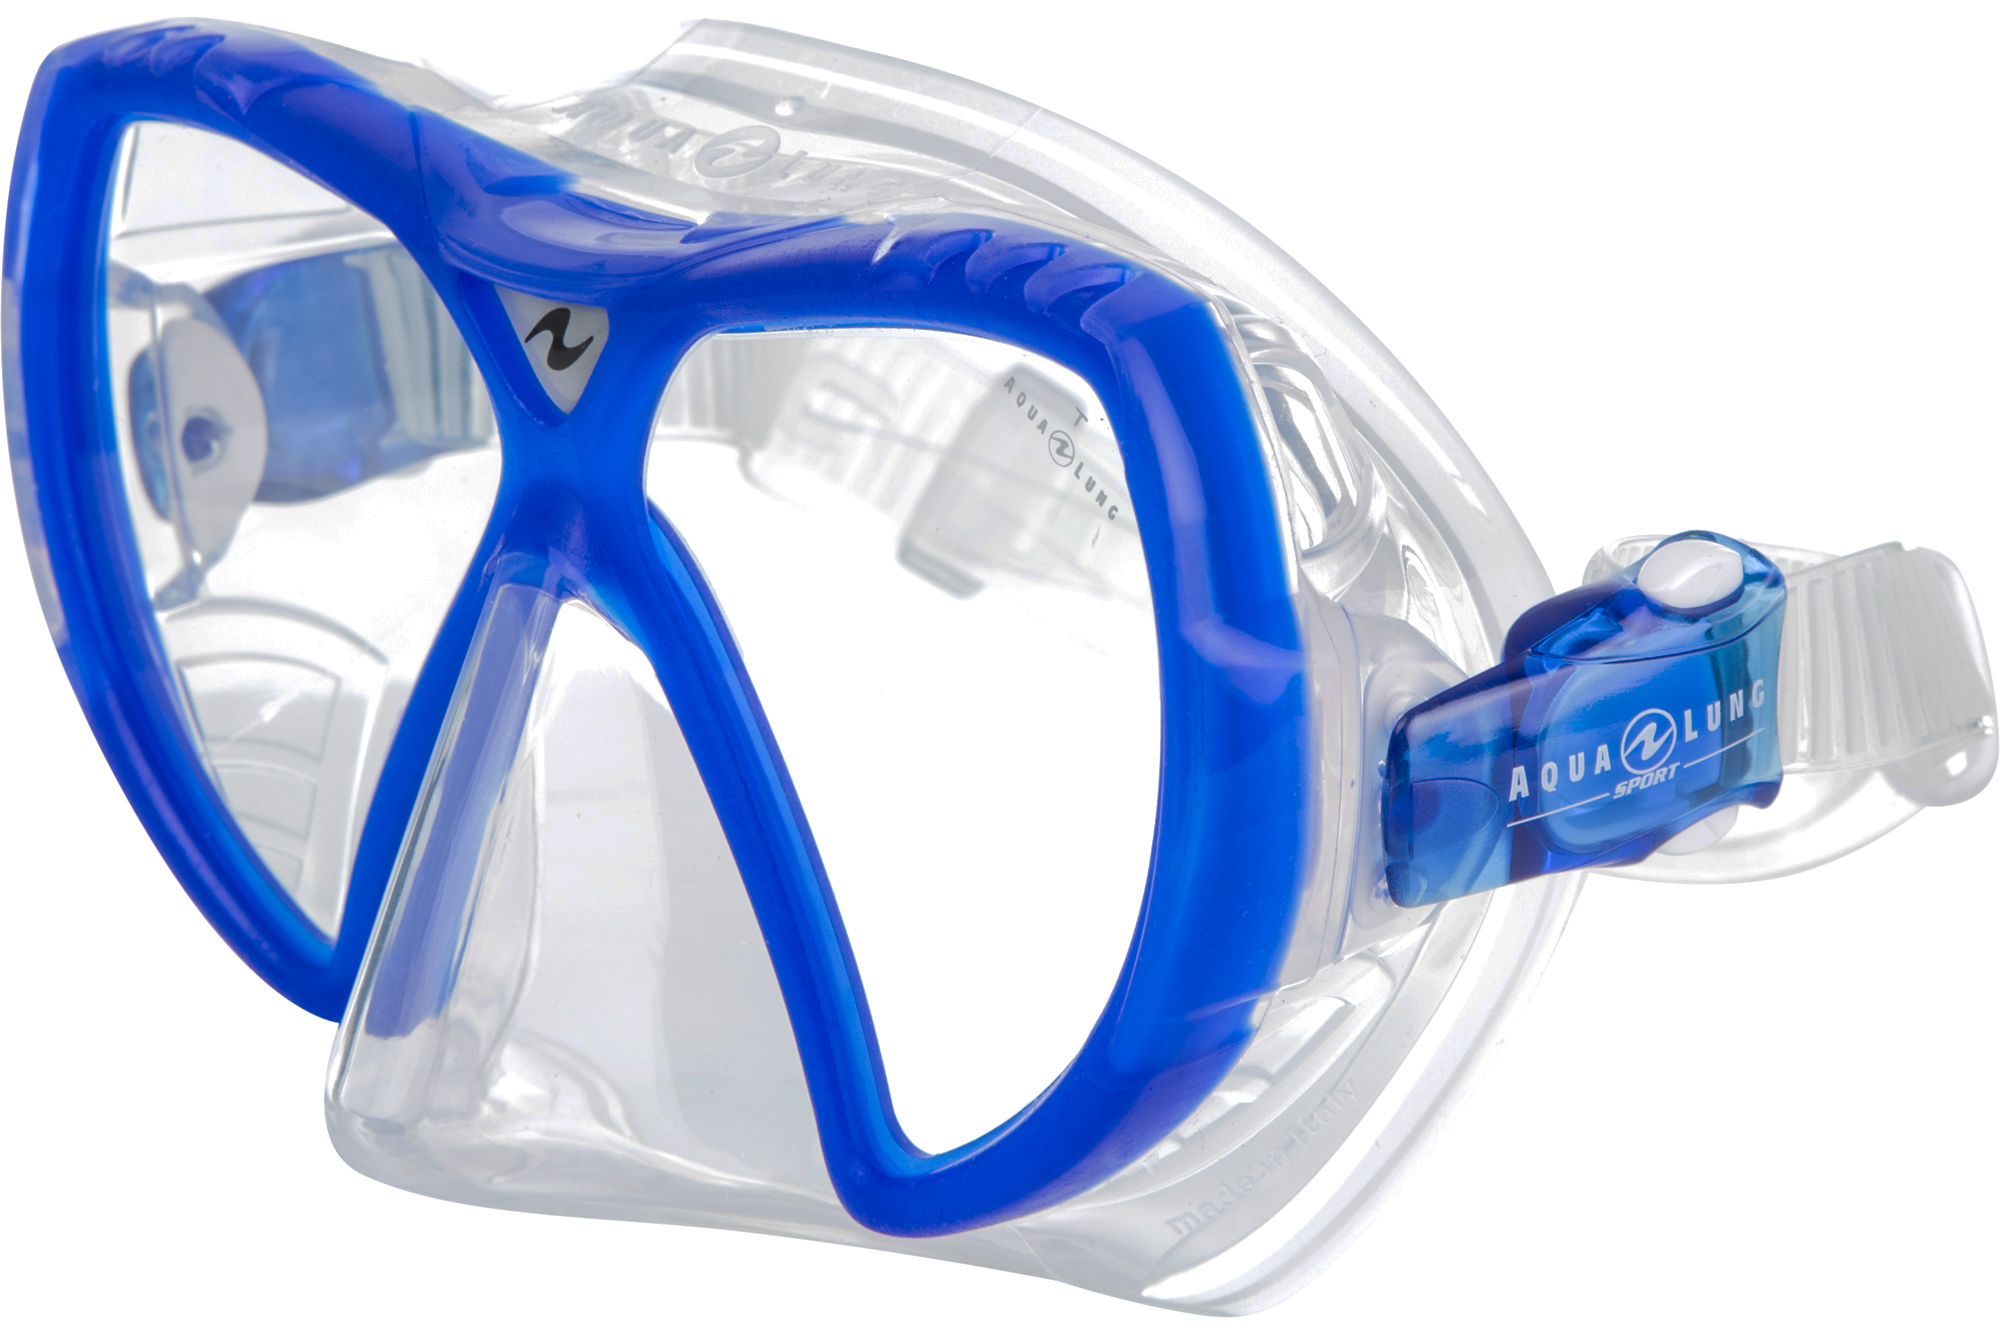 Aqualung Маска для плавания Aqualung Vision Flex LX aqualung axiom i3 bcd blue